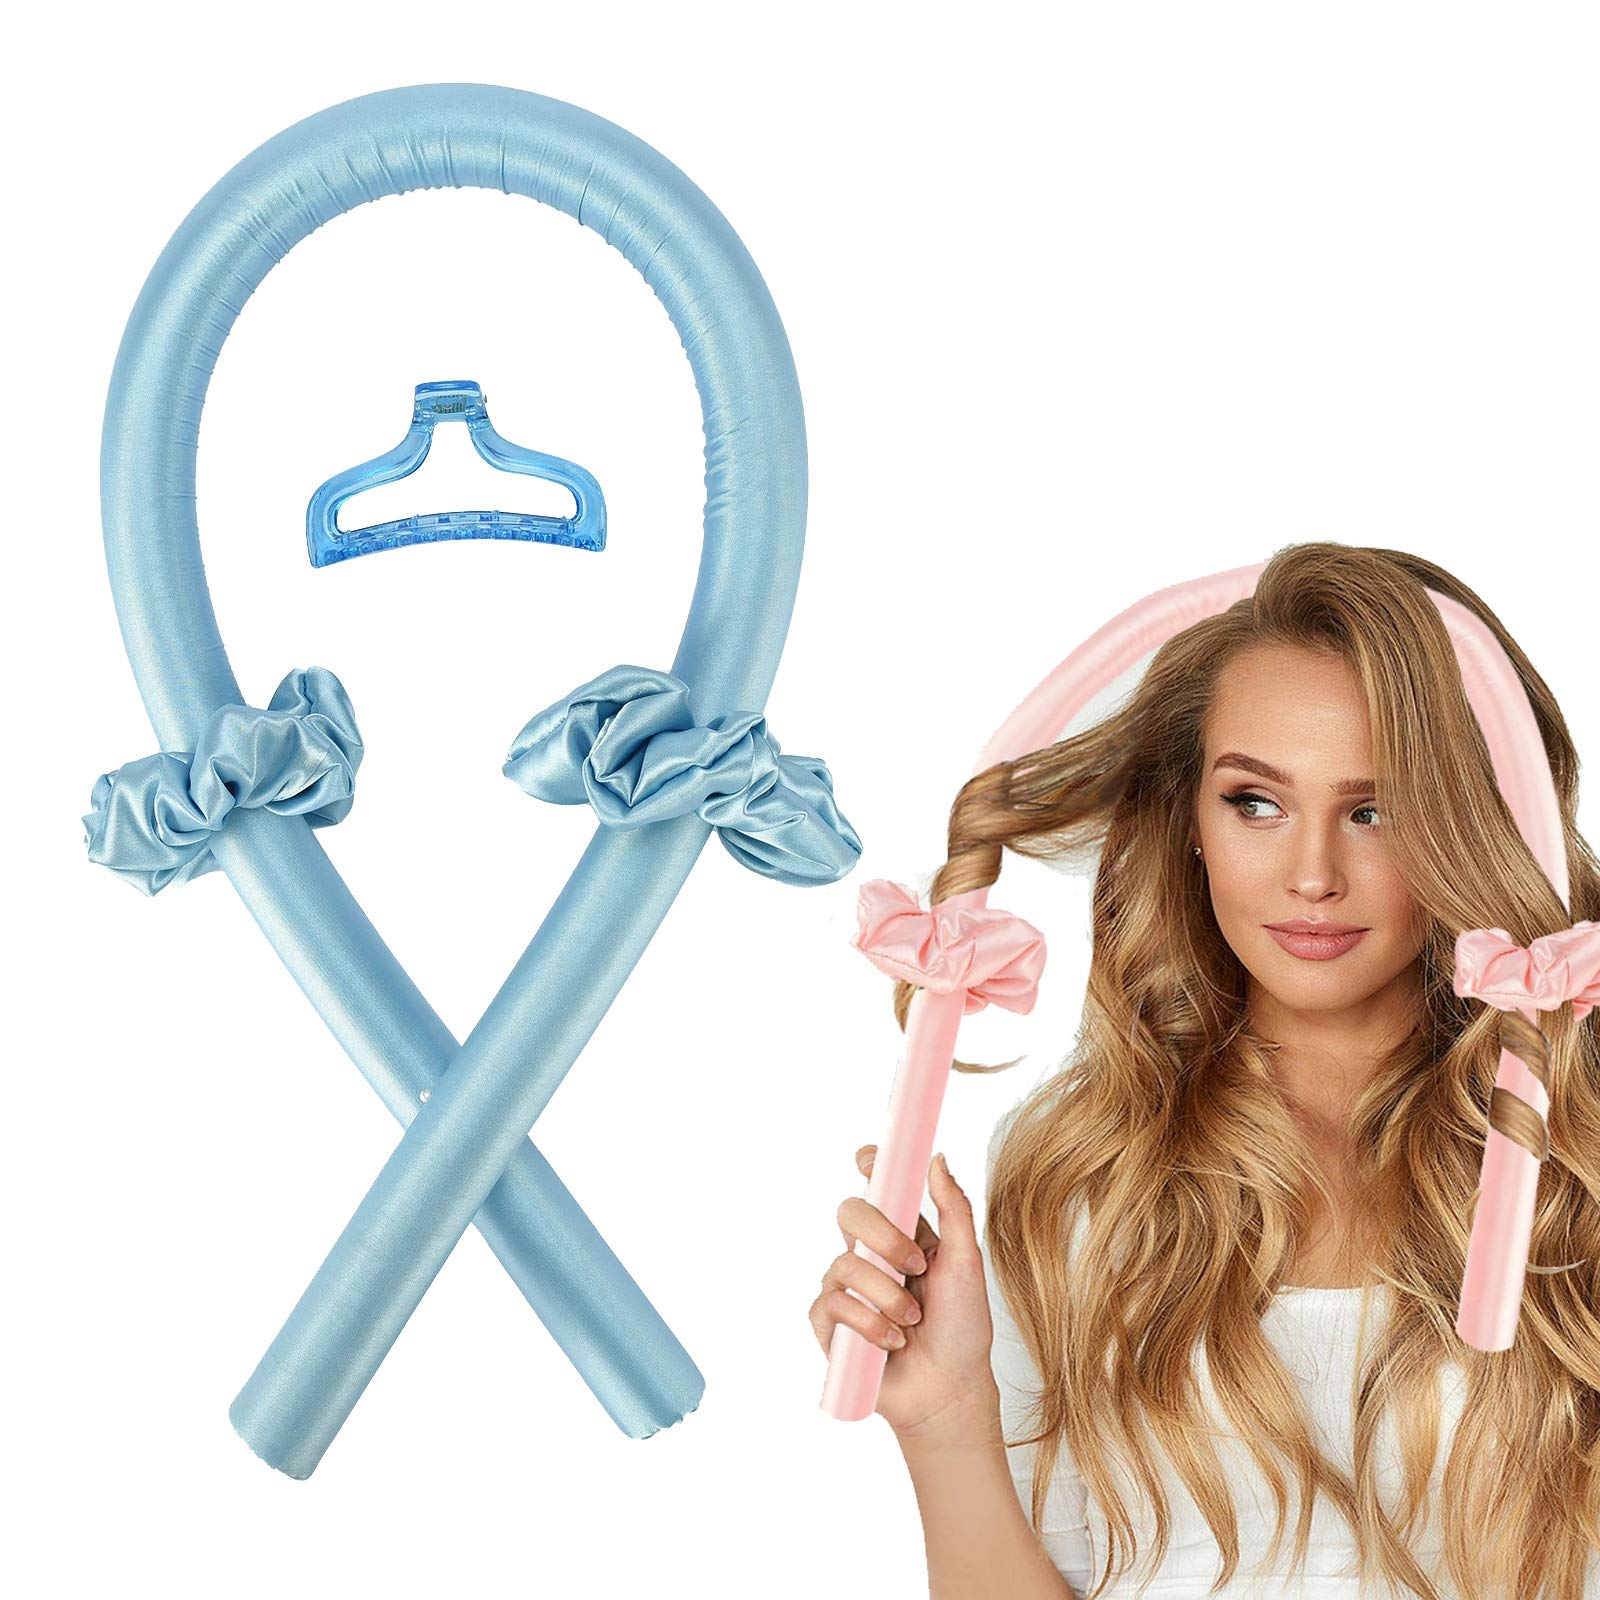 Women Heatless Hair Curlers For Long Hair, No Heat Silk Curls Headband You Can To Sleep In Overnight, Soft Foam Hair Rollers, Curling Ribbon and Flexi Rods for Natural Hair (Blue)